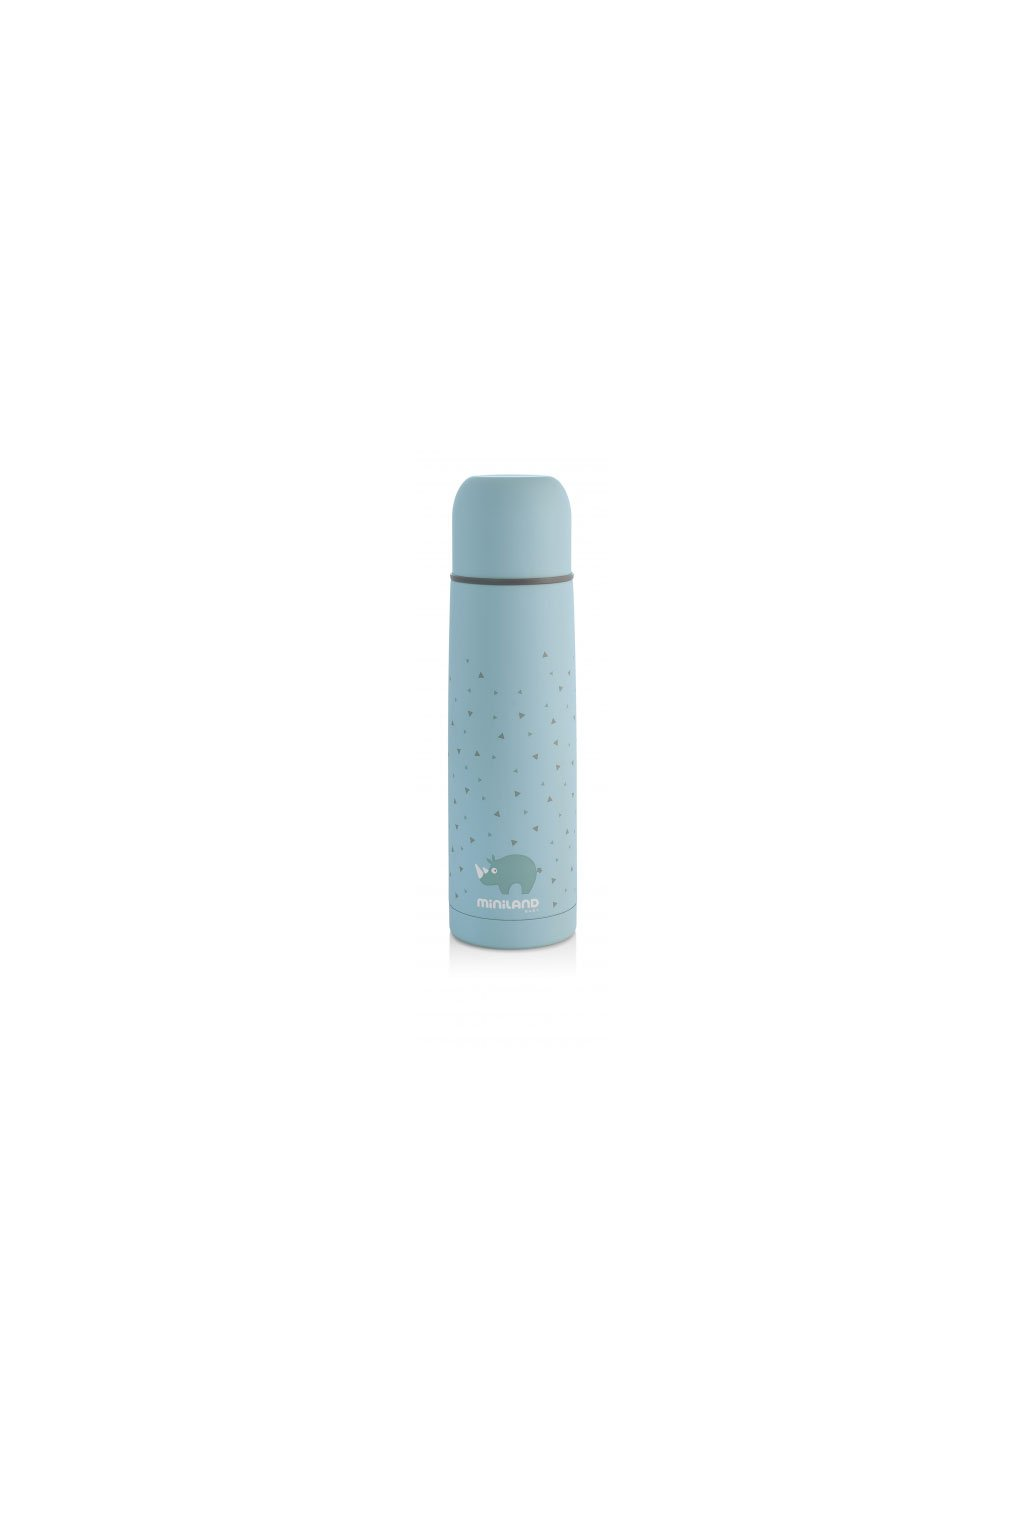 Termoska Silky Blue 500ml Miniland